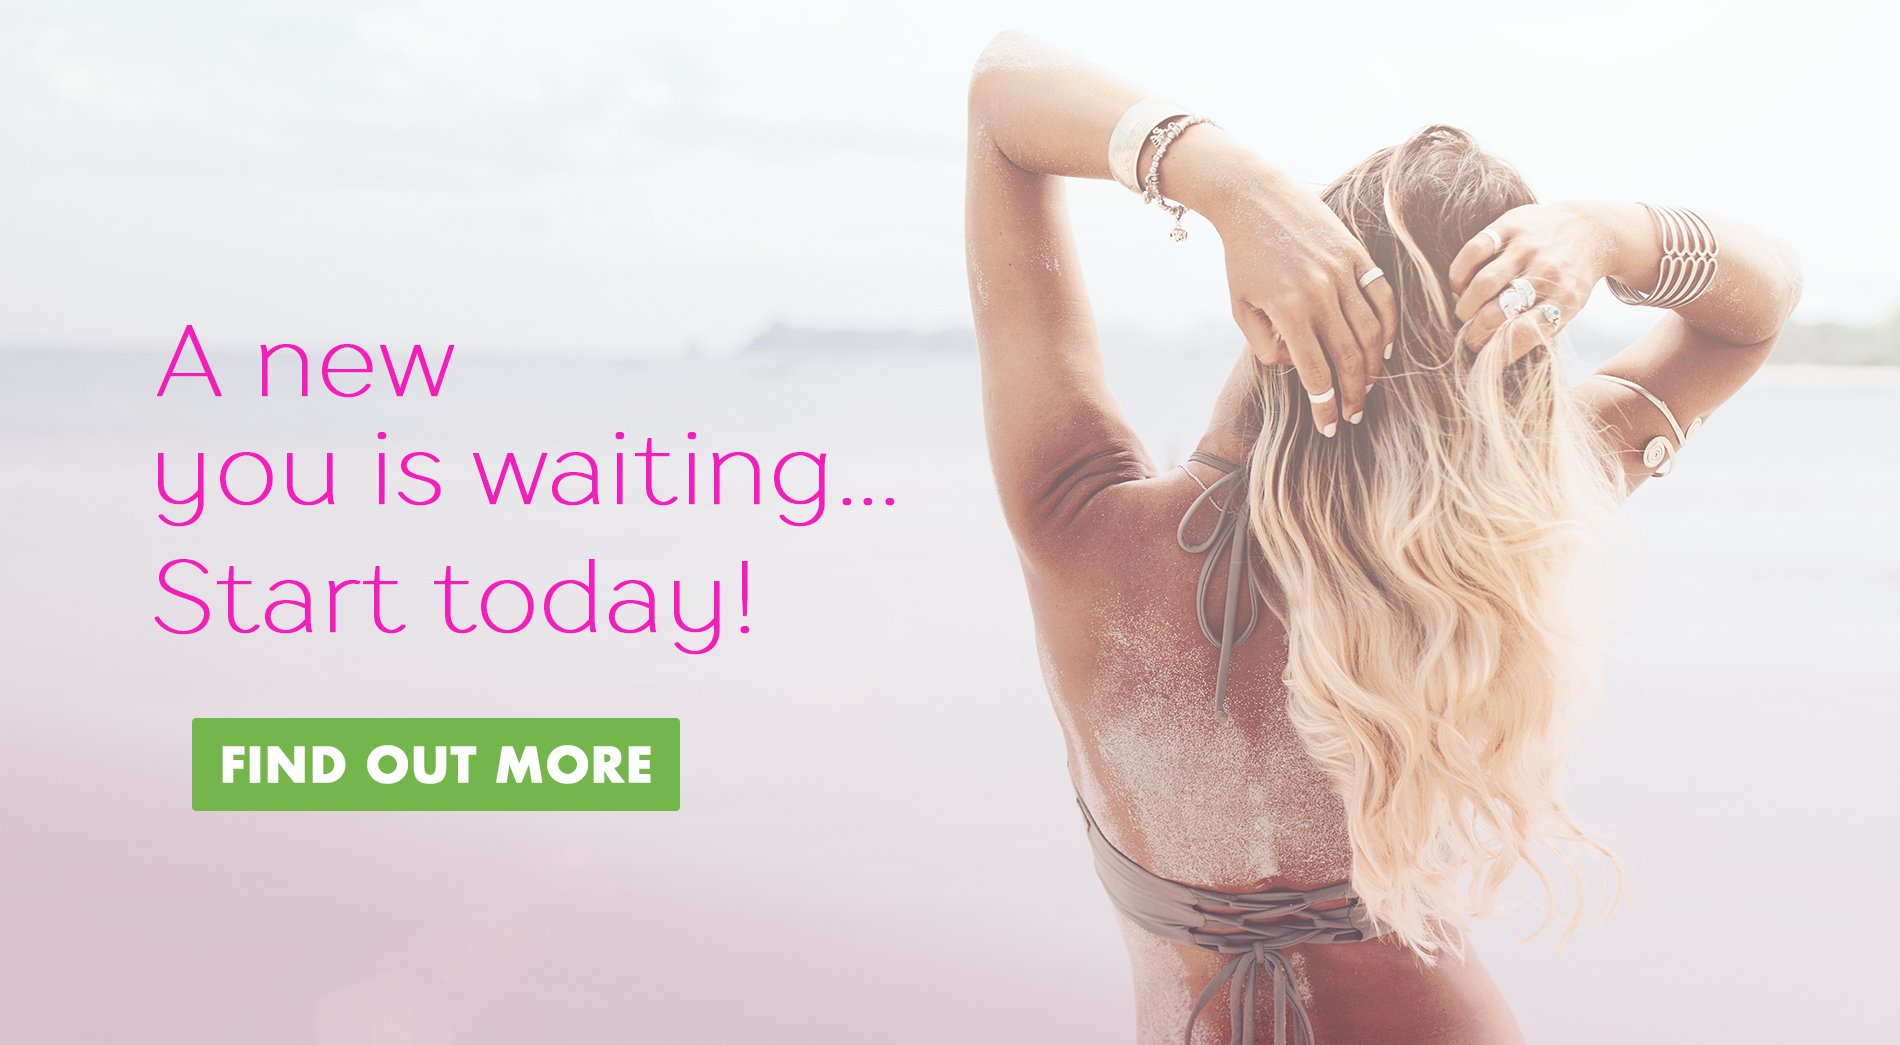 Find out more about 28-day teatox